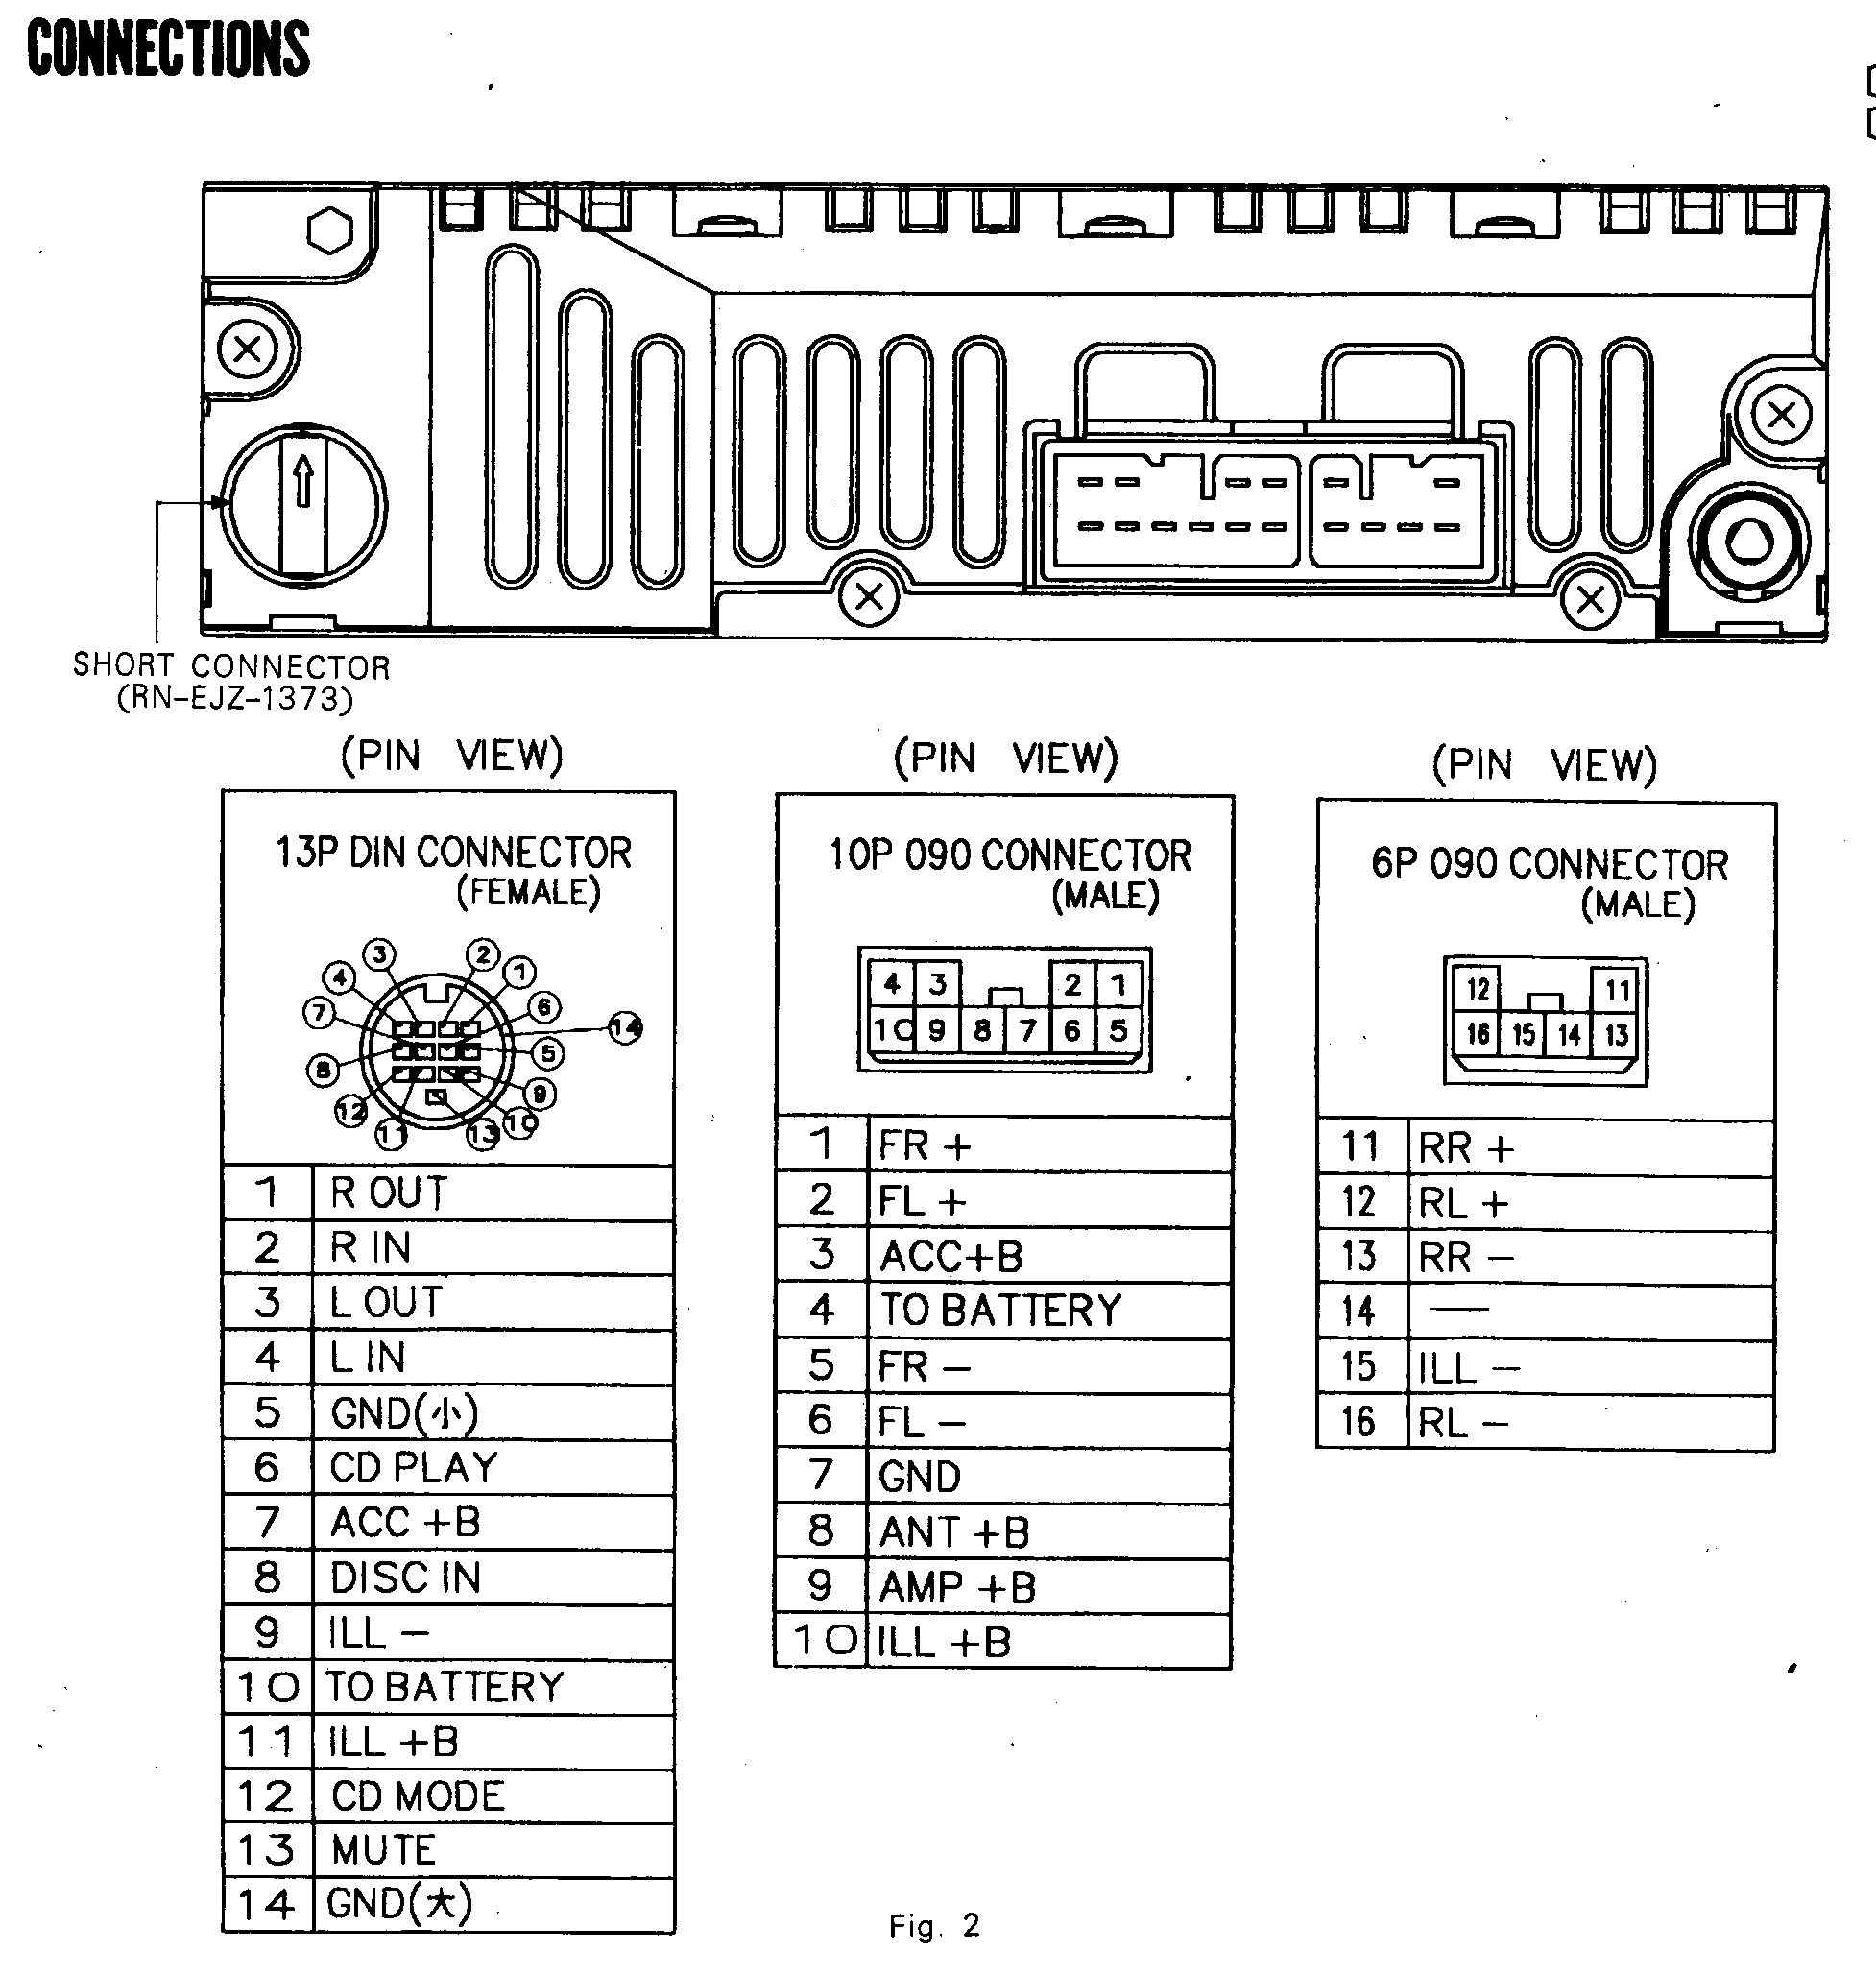 2000 Chevy Fuse Box Diagram together with 7 Pin Wiring Diagram 34265 further Wallpaper 5a furthermore 391522 Random Transportation Pictures 932 additionally L 787972e5e3ff4c94853b281d4c2bbeda. on 2000 chevy tracker black